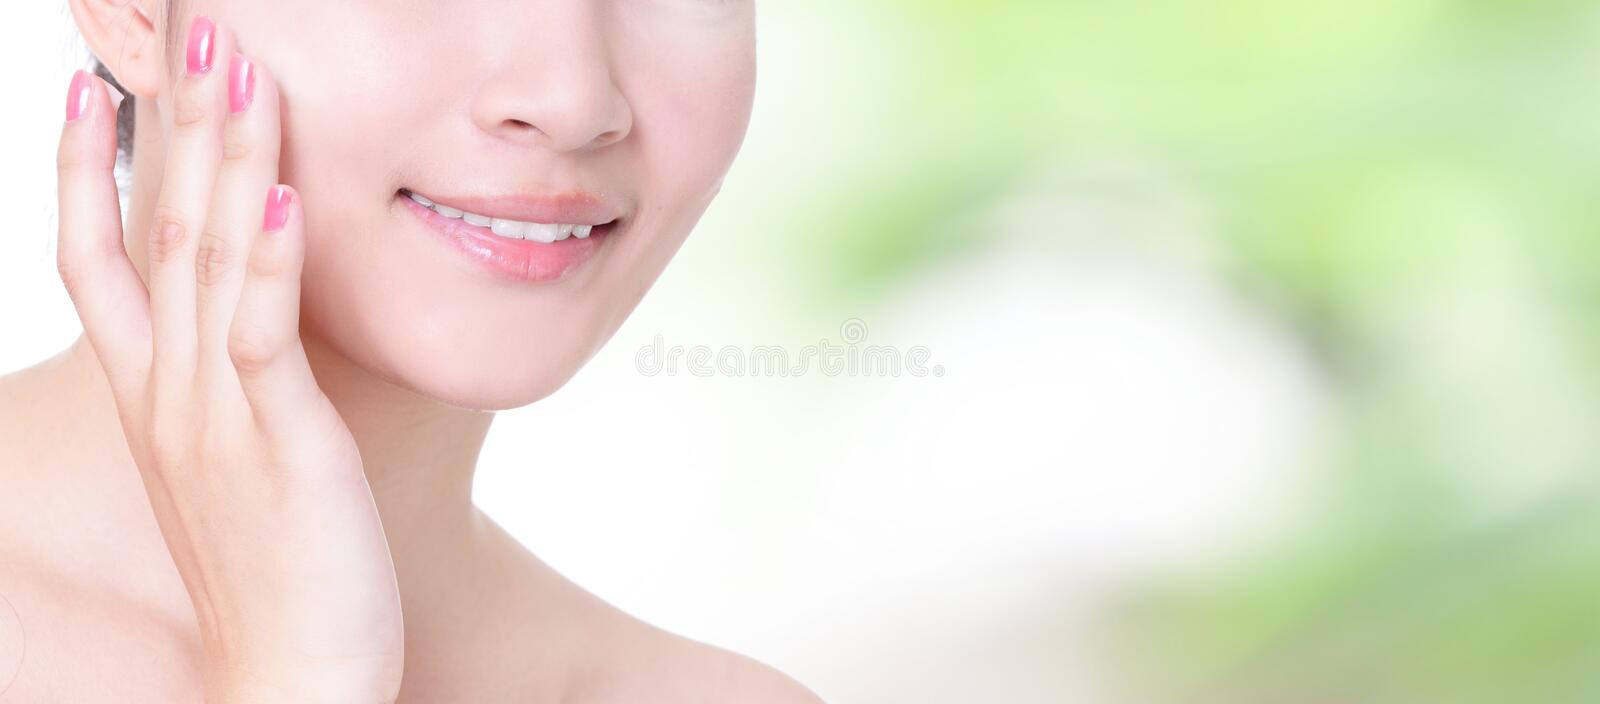 Woman smile mouth with health teeth close up royalty free stock images